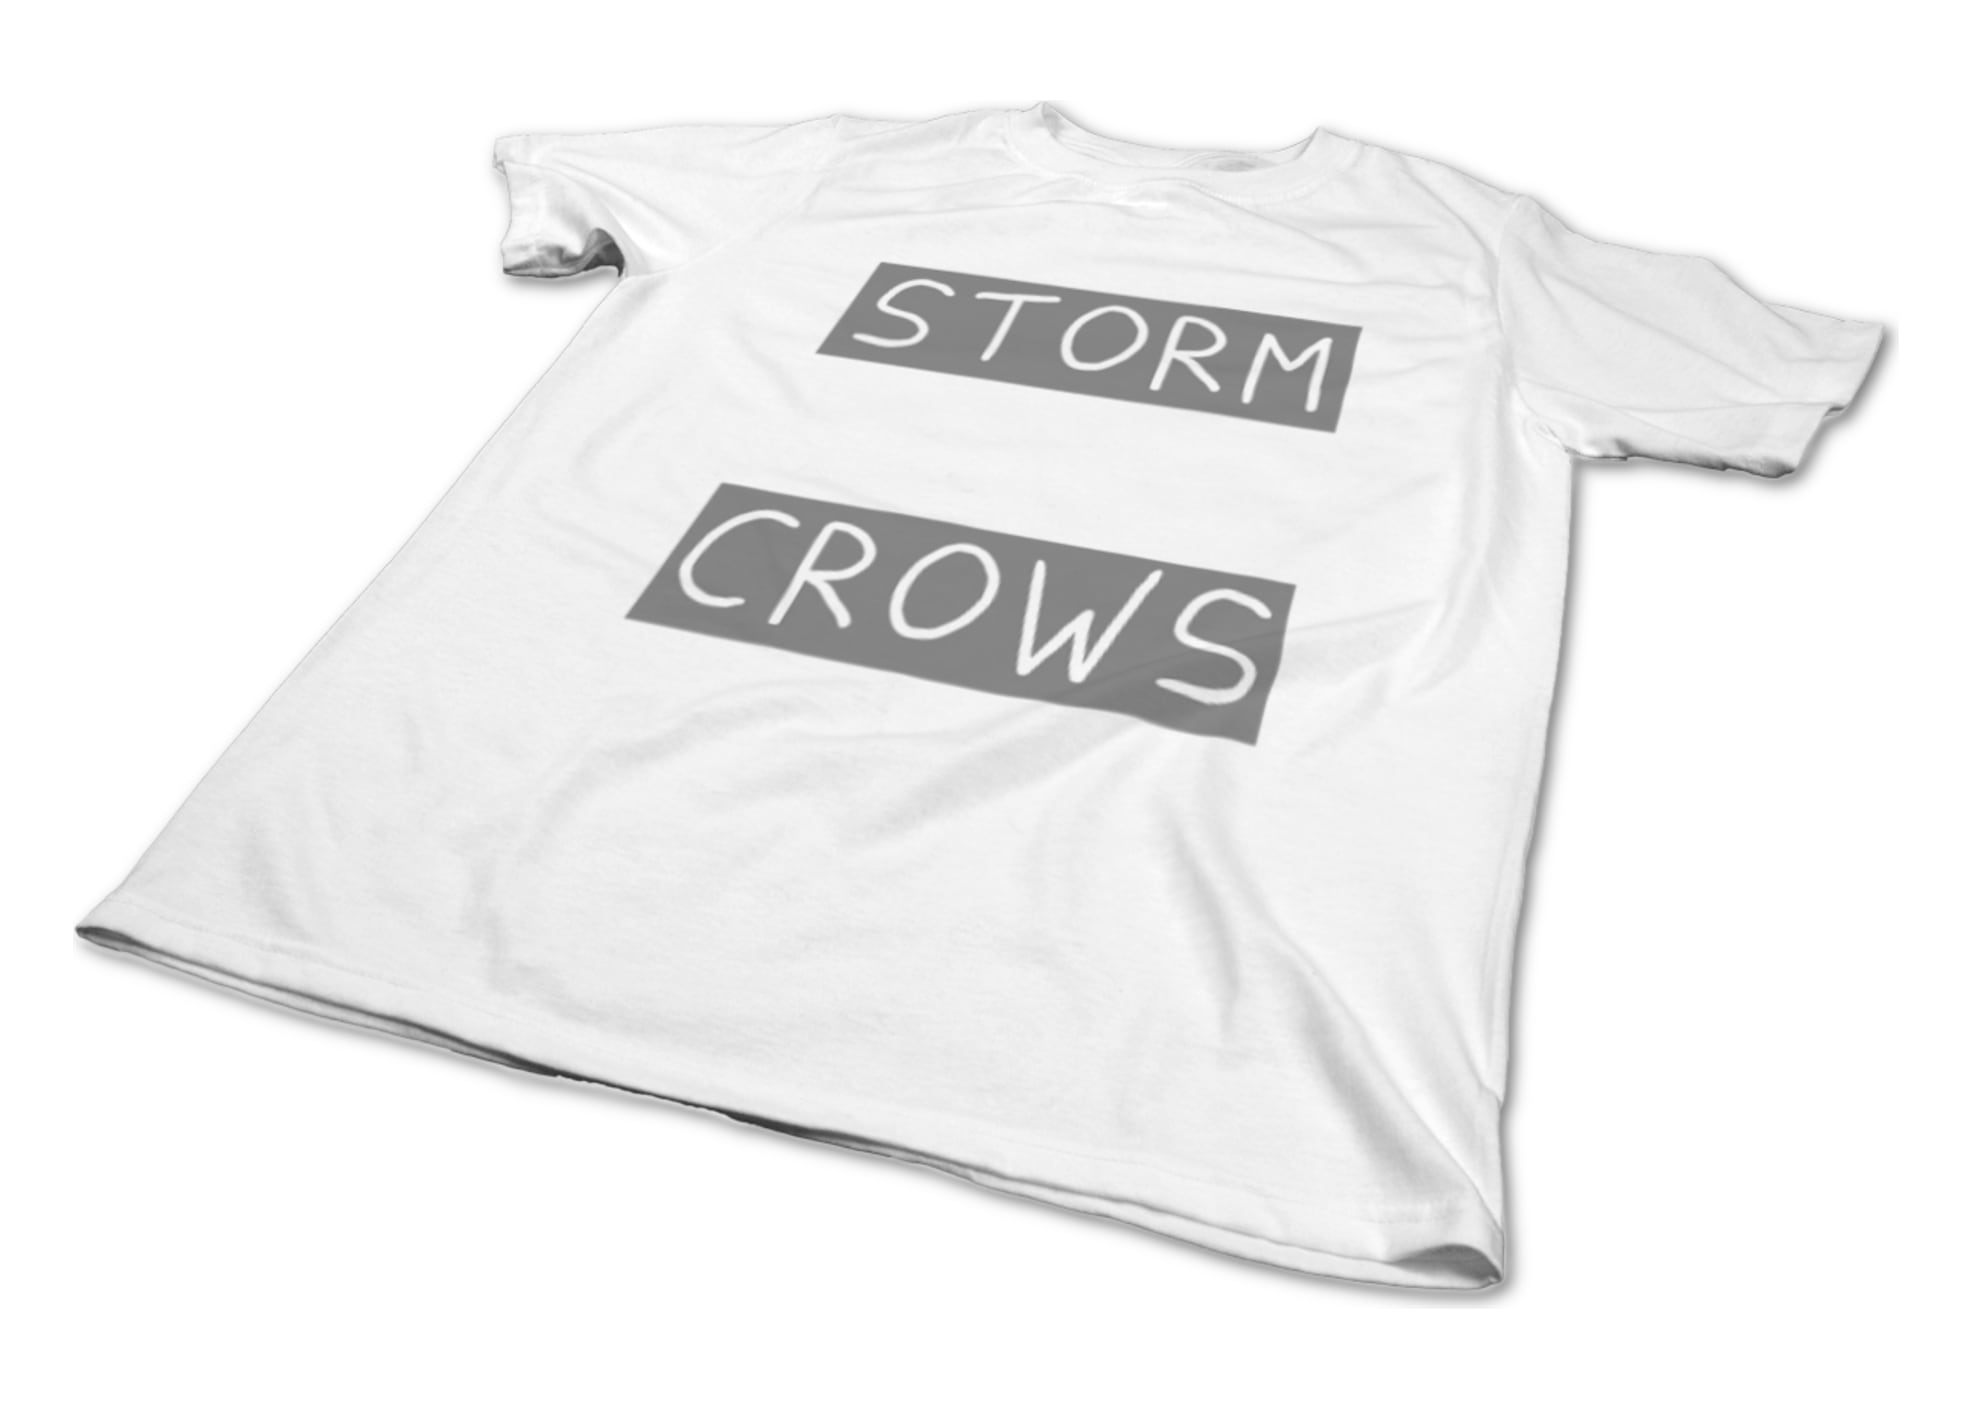 Storm of crows logo   green 1612200405